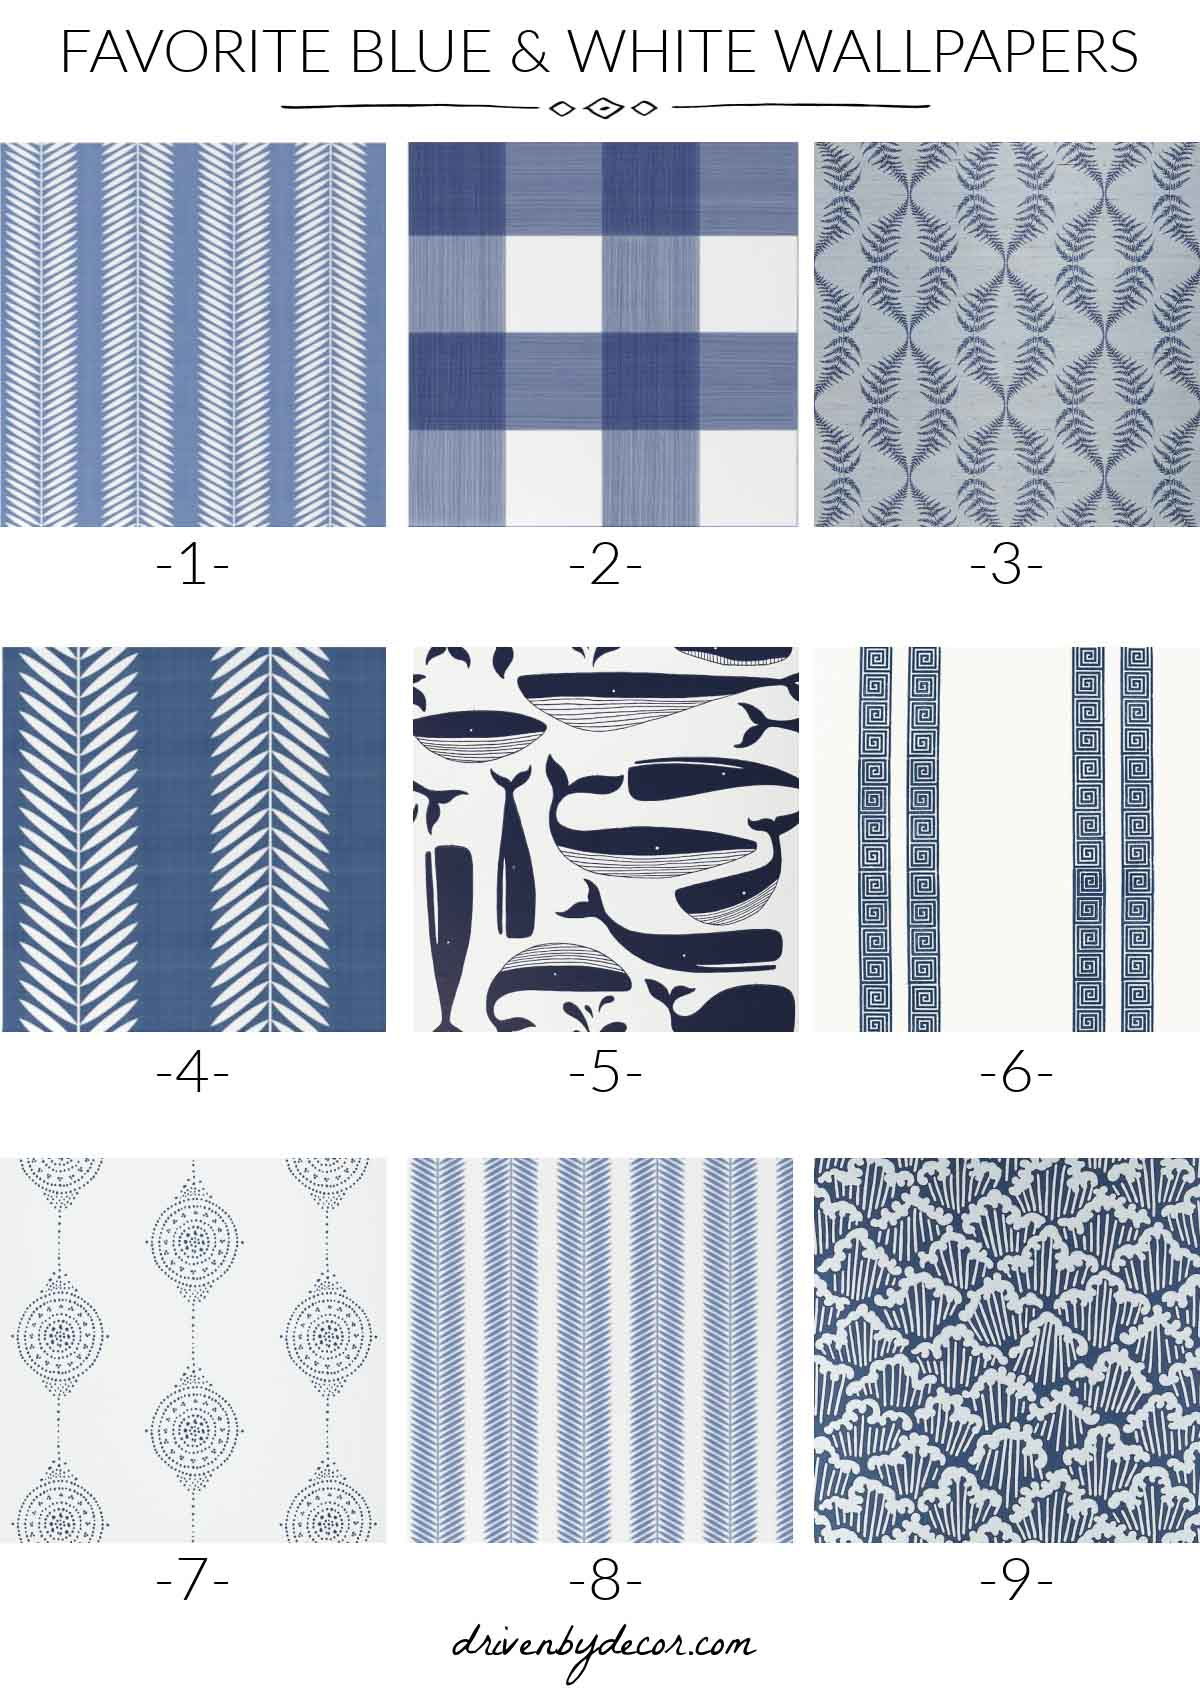 Blue and white wallpaper favorites!